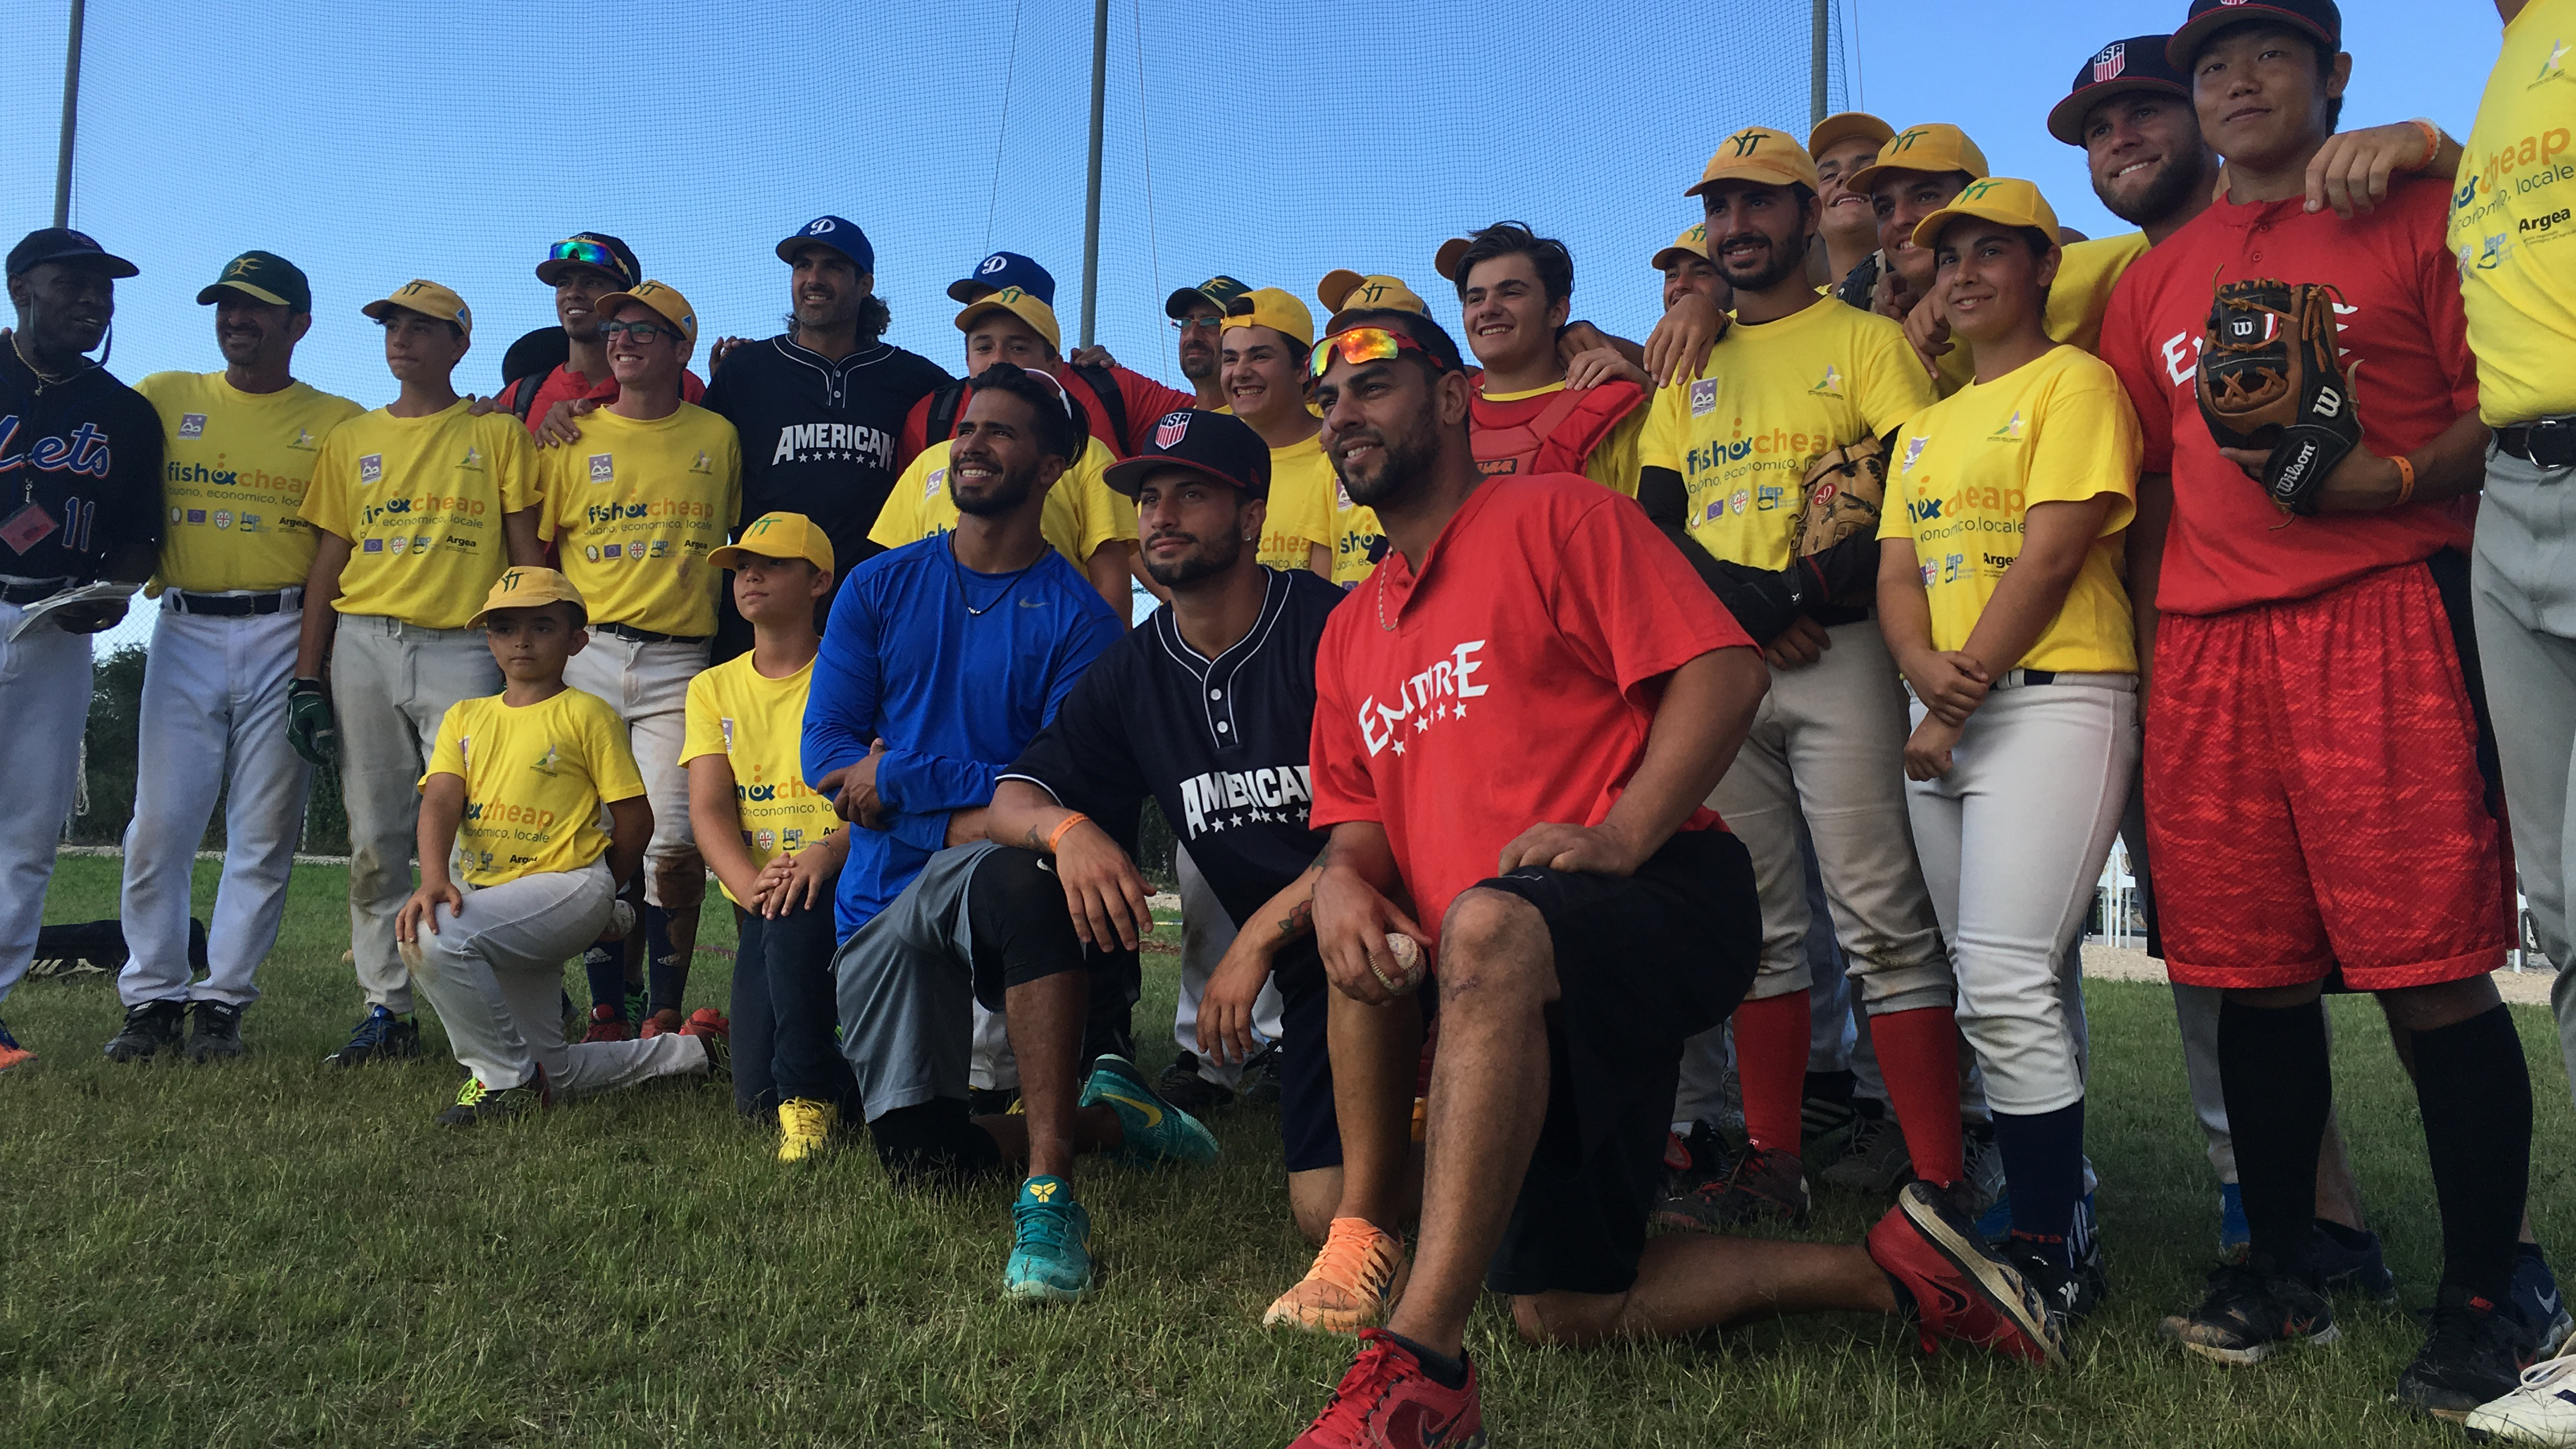 EMPIRE LEAGUE ALL STAR AMERICAN TEAM COMPETES VERSUS ITALIAN BASEBALL